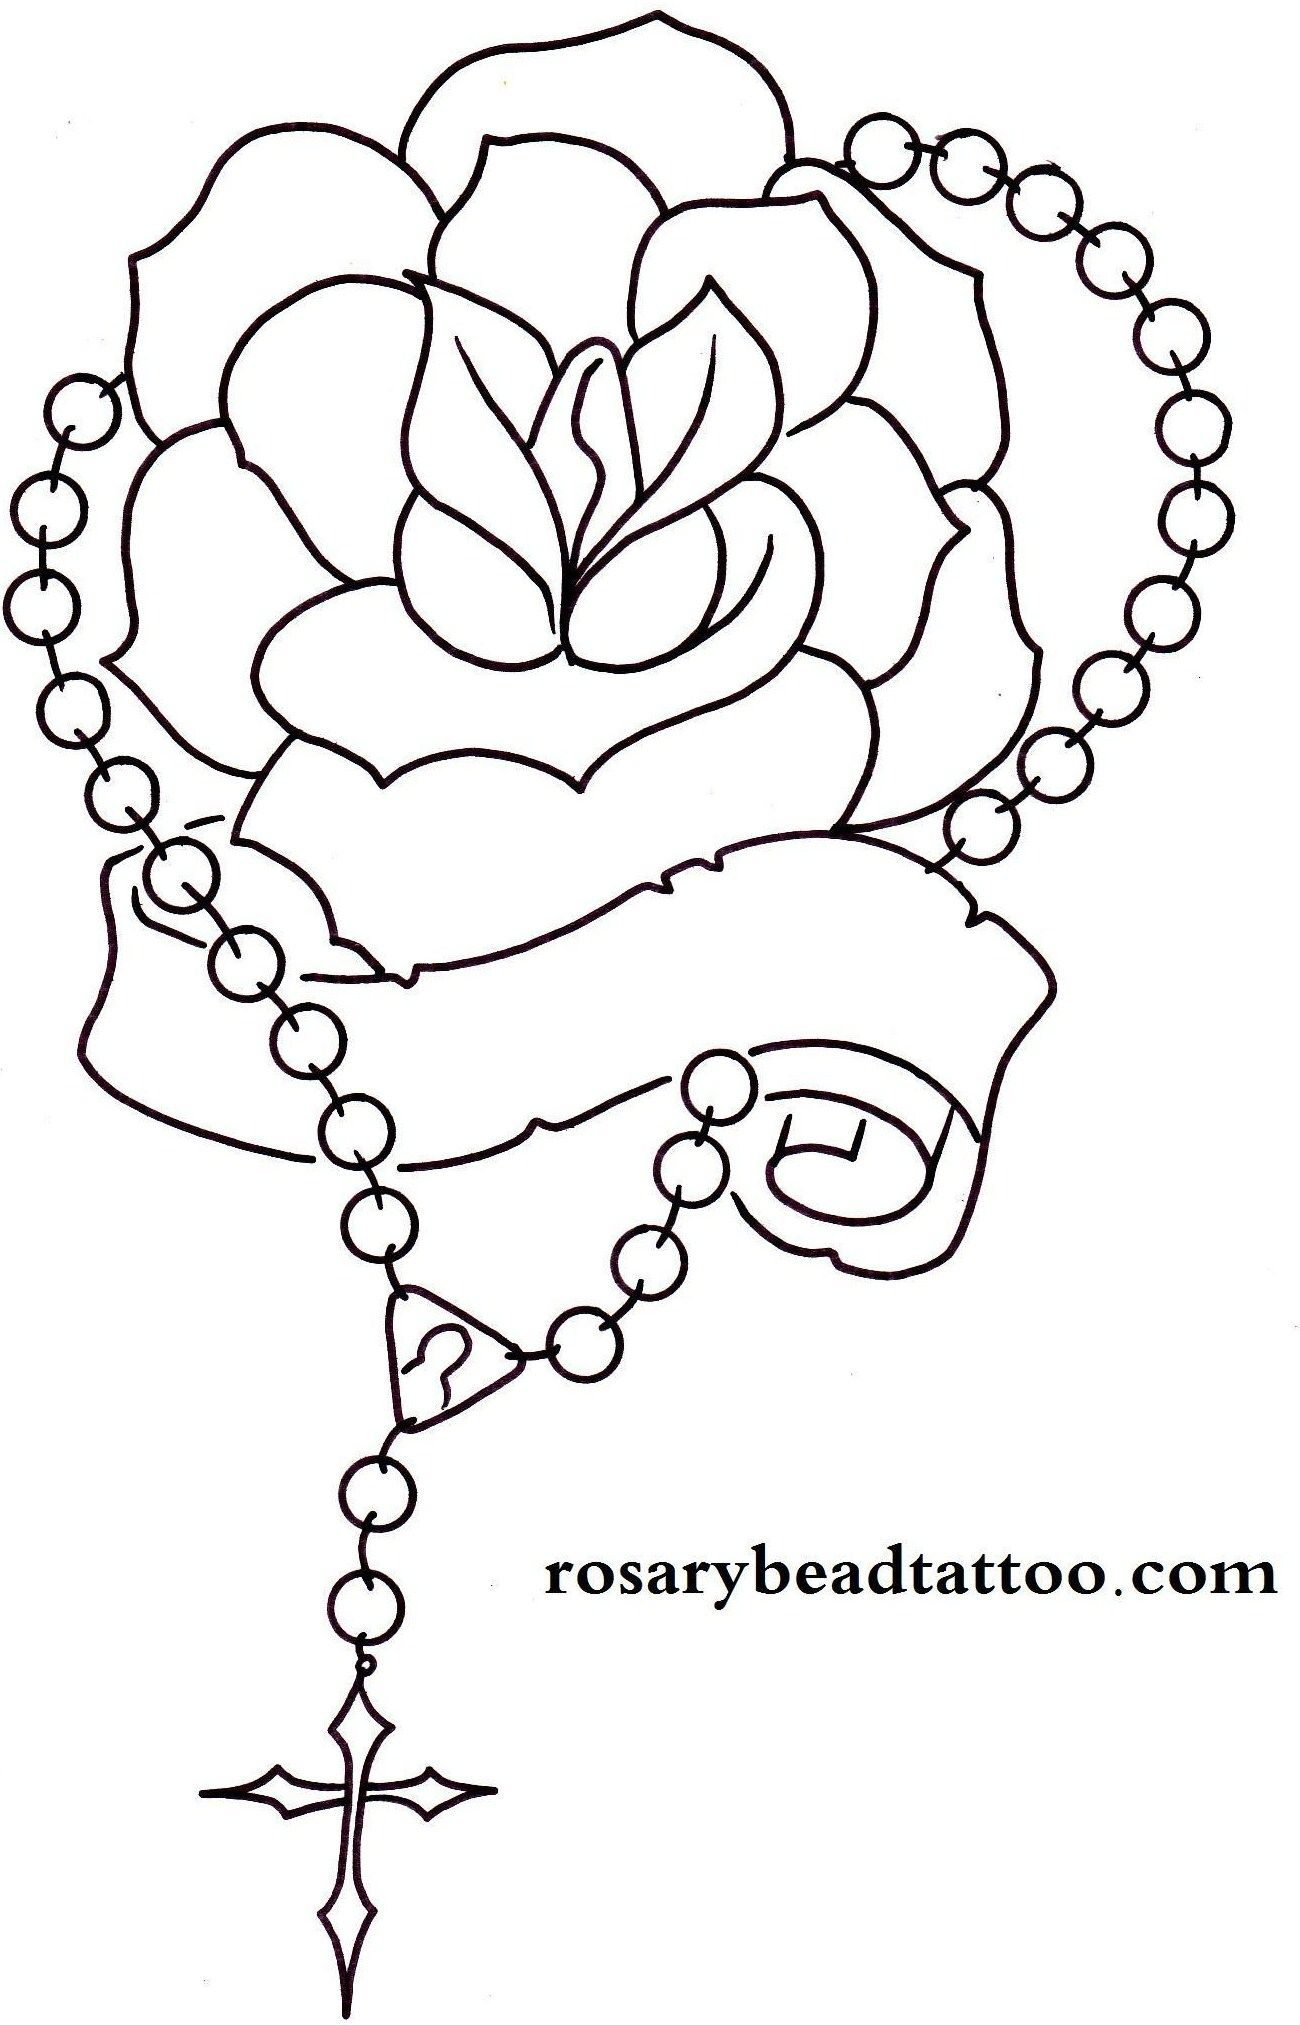 Line Drawing Name Designs : Rosary drawings rose tattoo banner